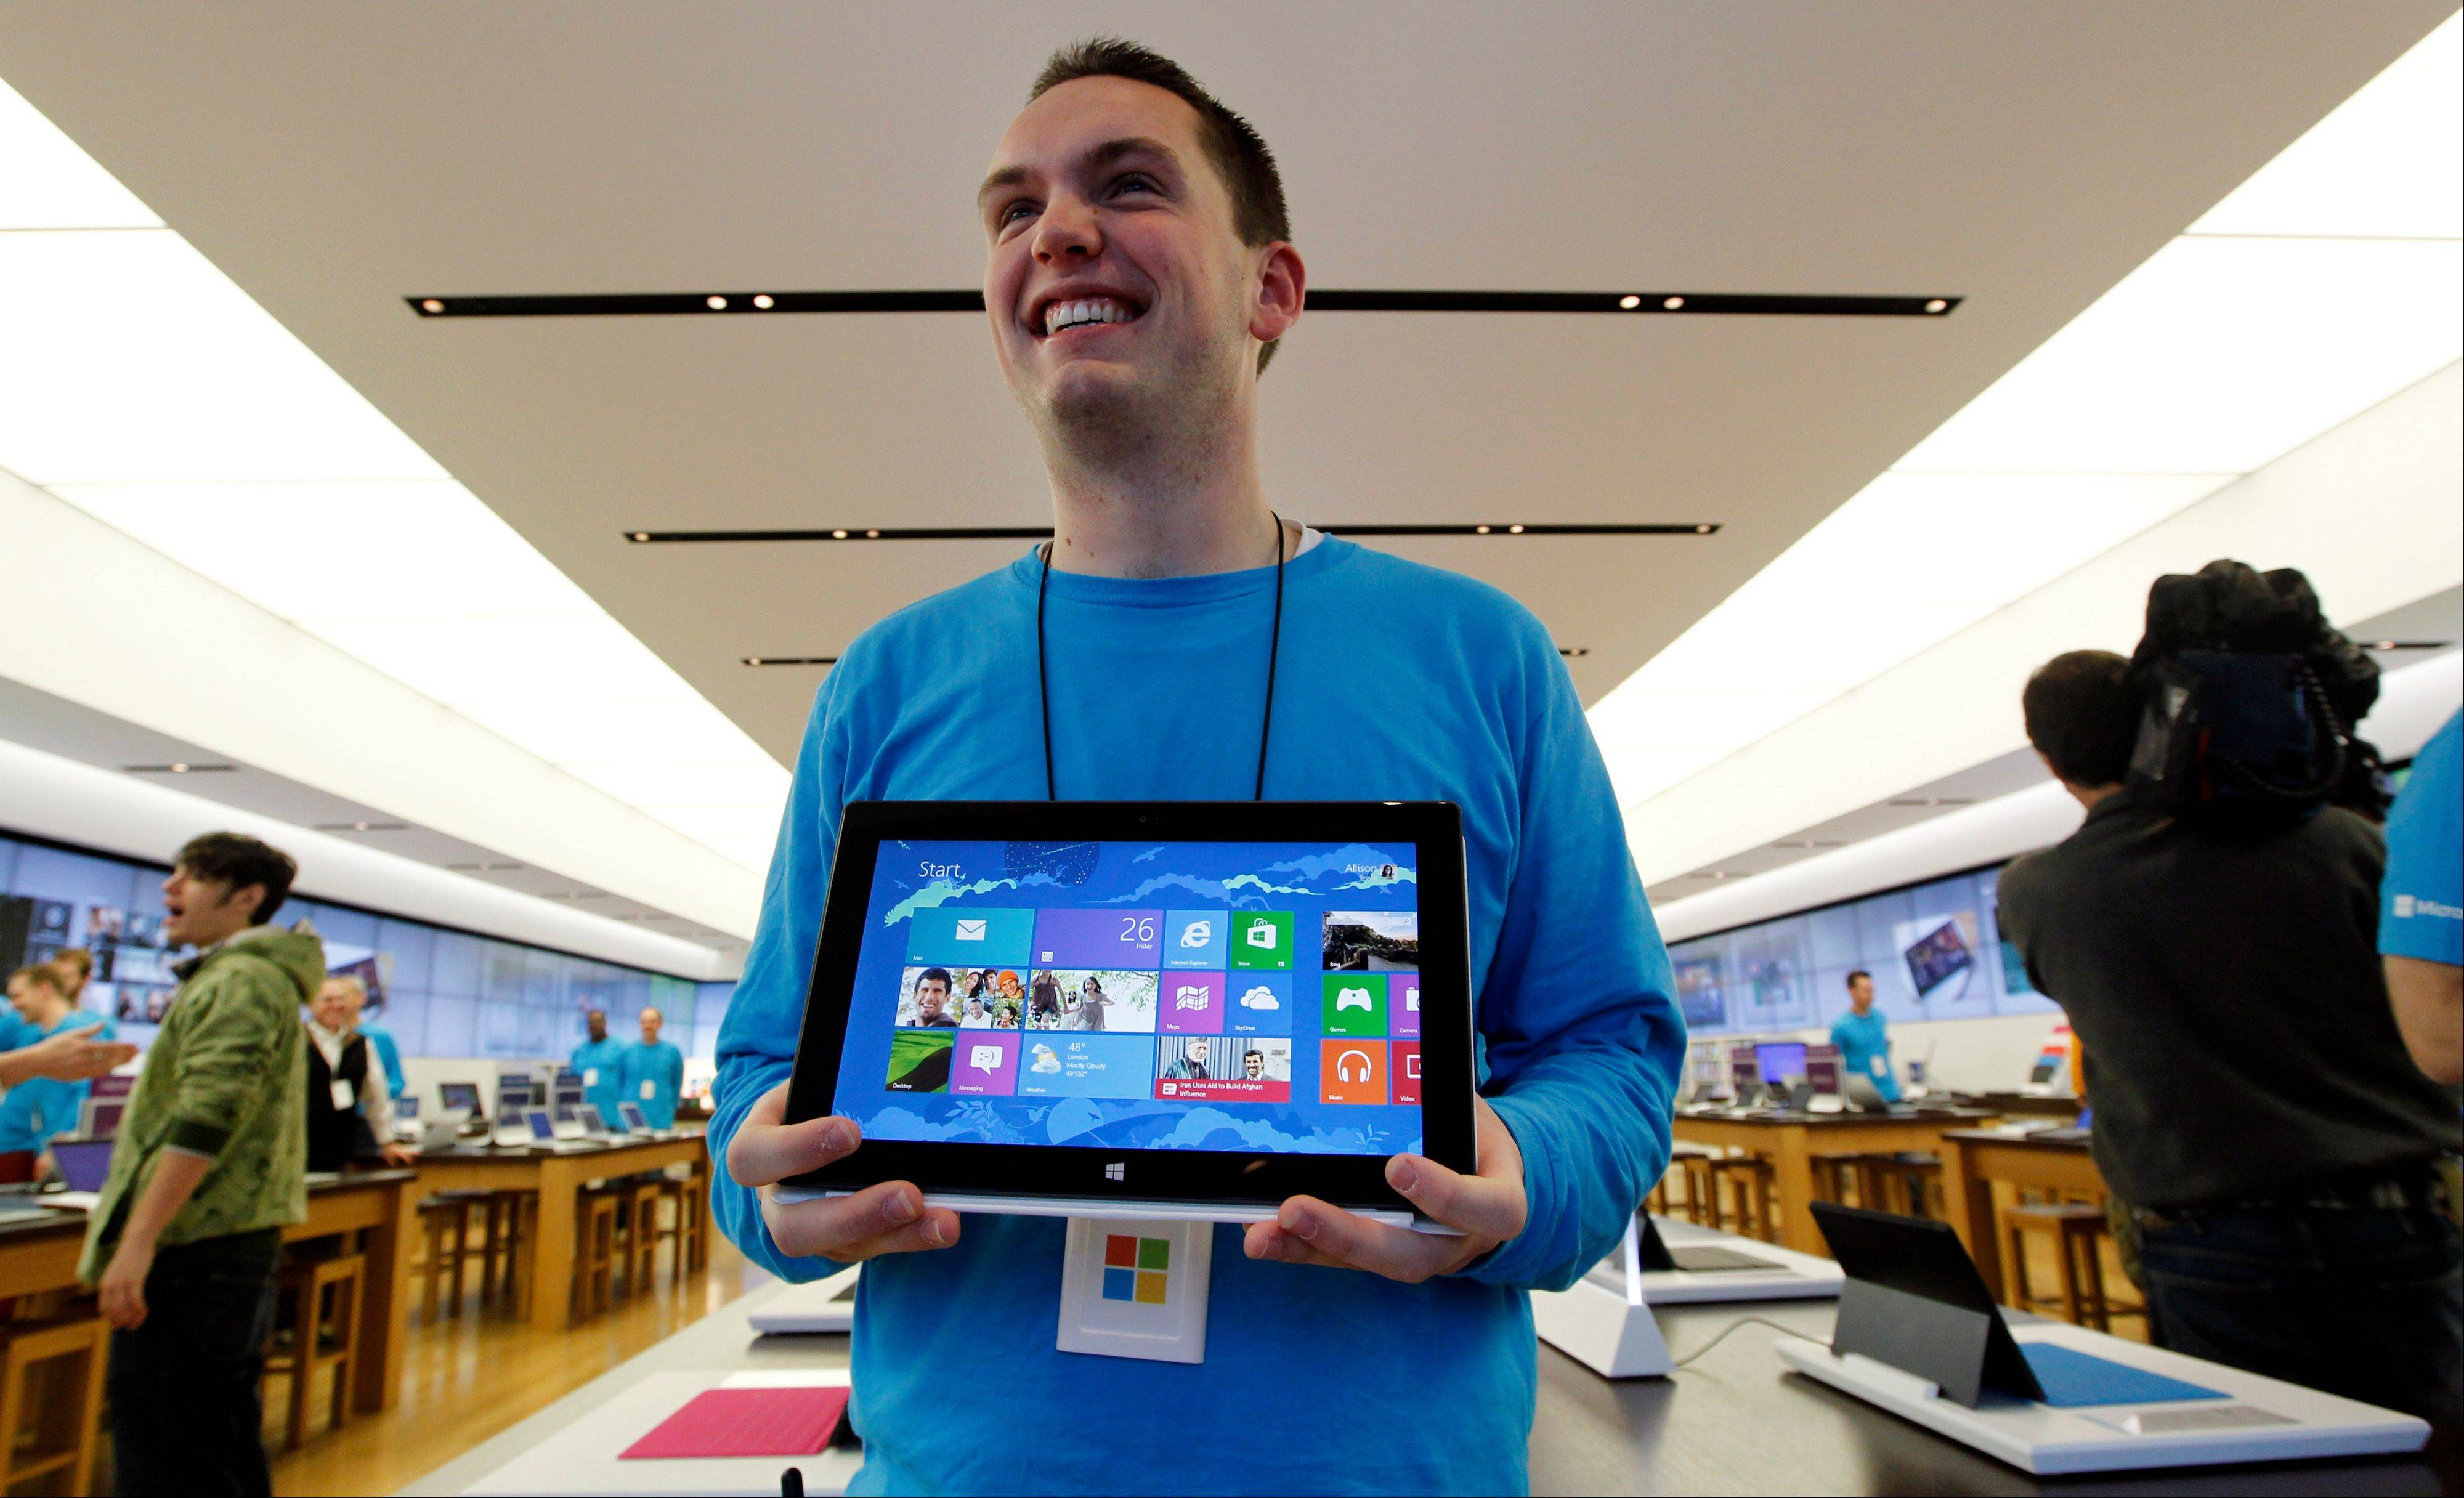 Microsoft store product adviser Stuart Pitts displays the new Surface tablet computer.